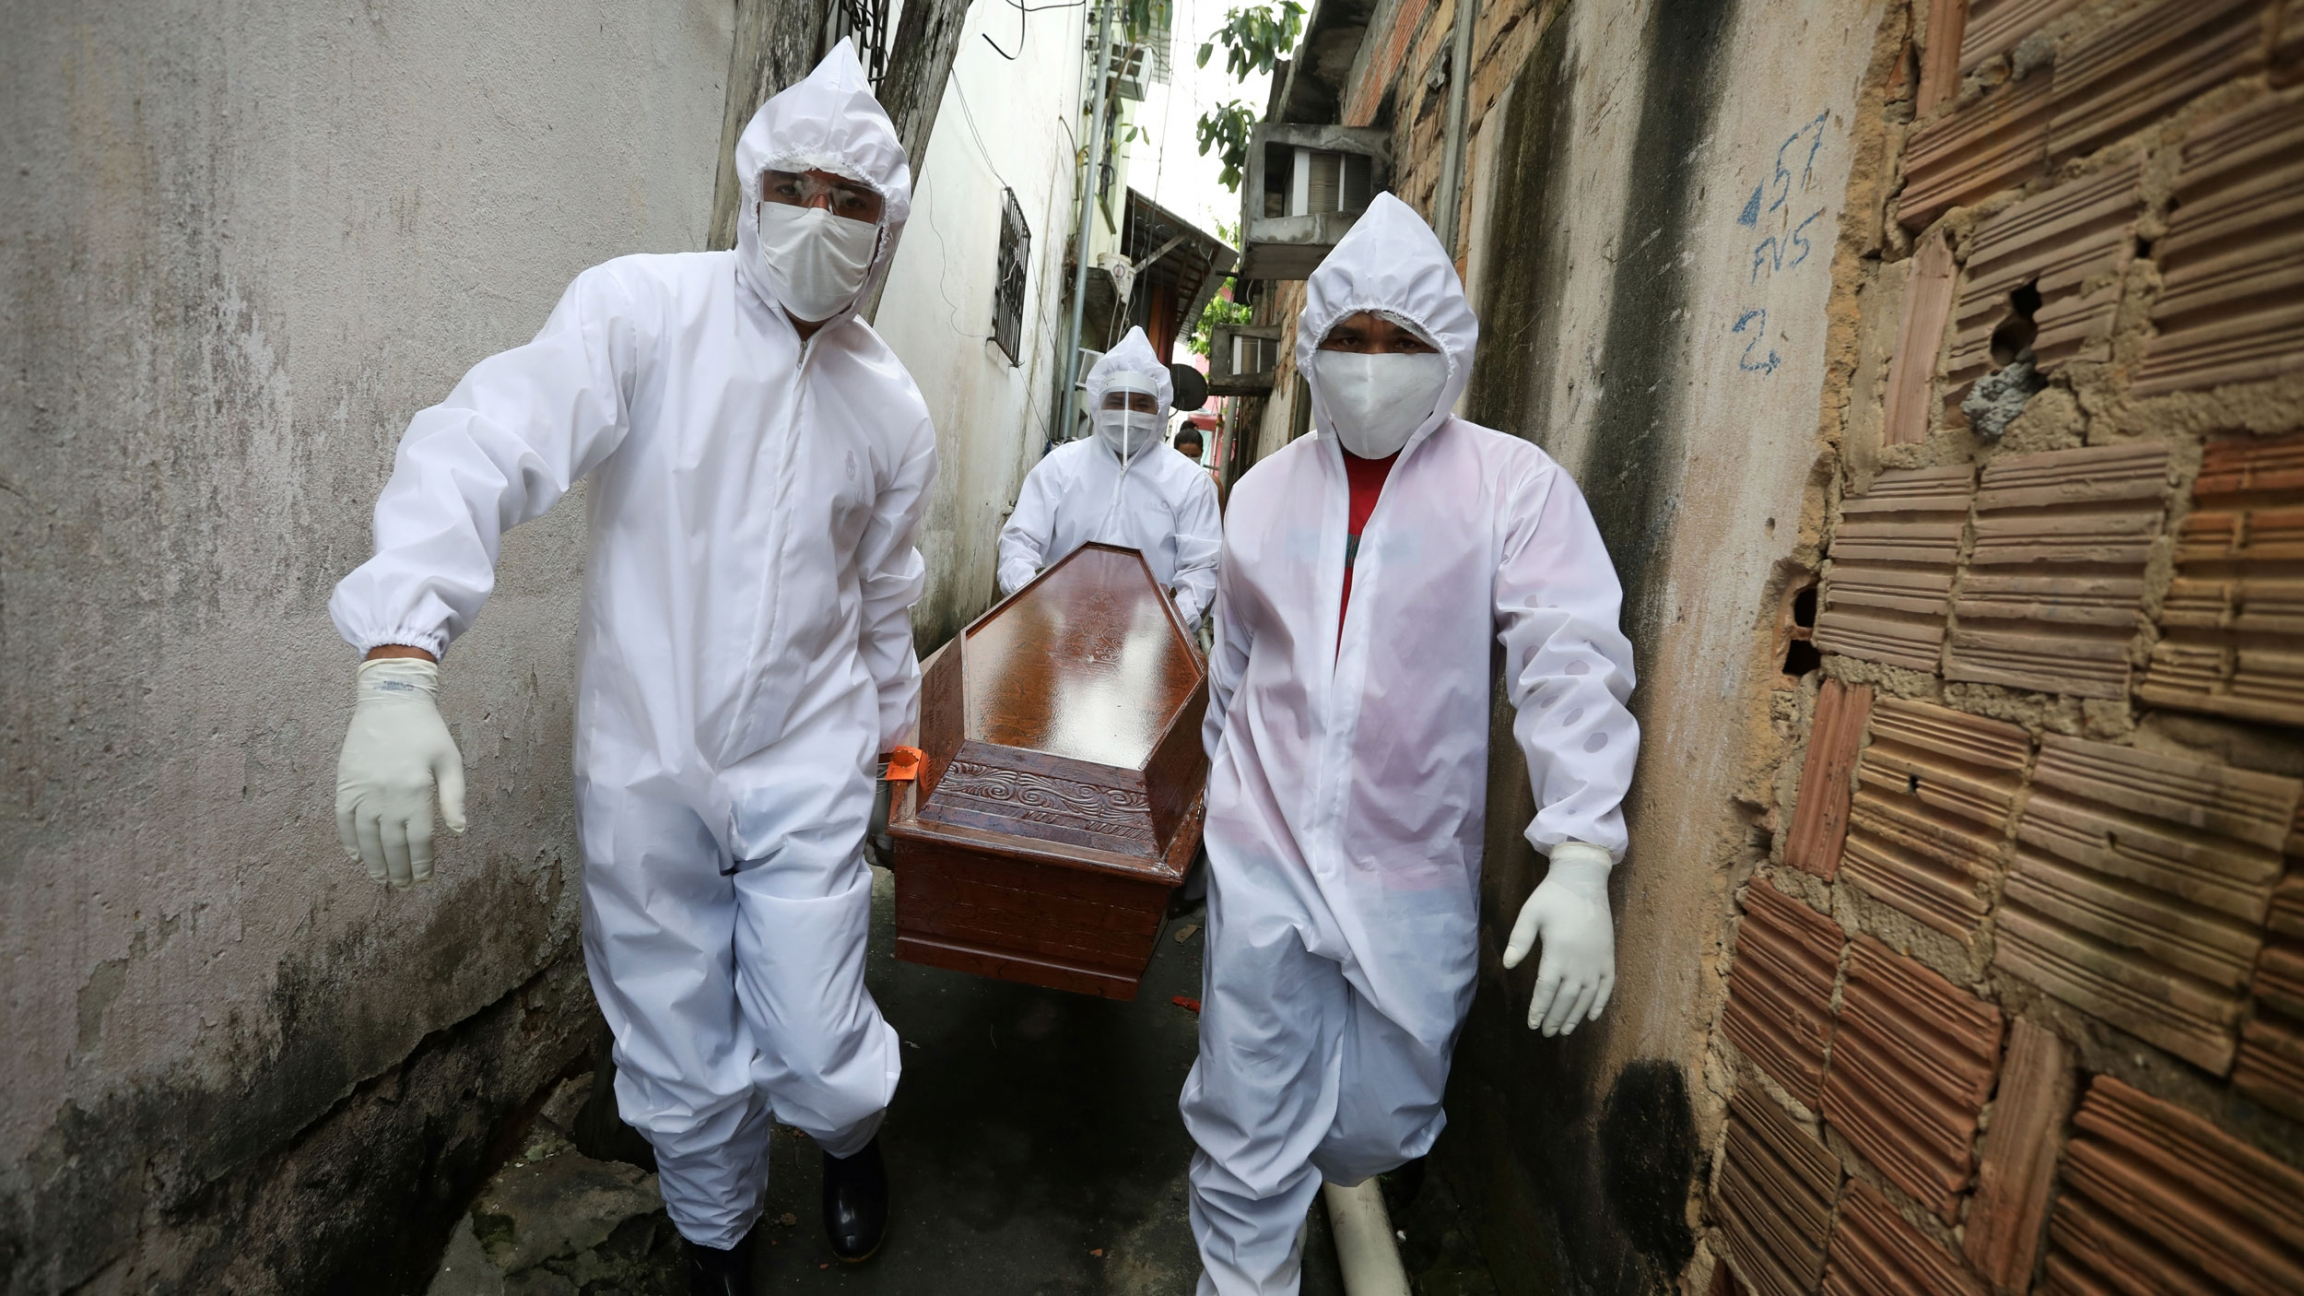 Three workers are shown wearing white medical protective clothing and masks while carrying a wooden coffing in a small alley.